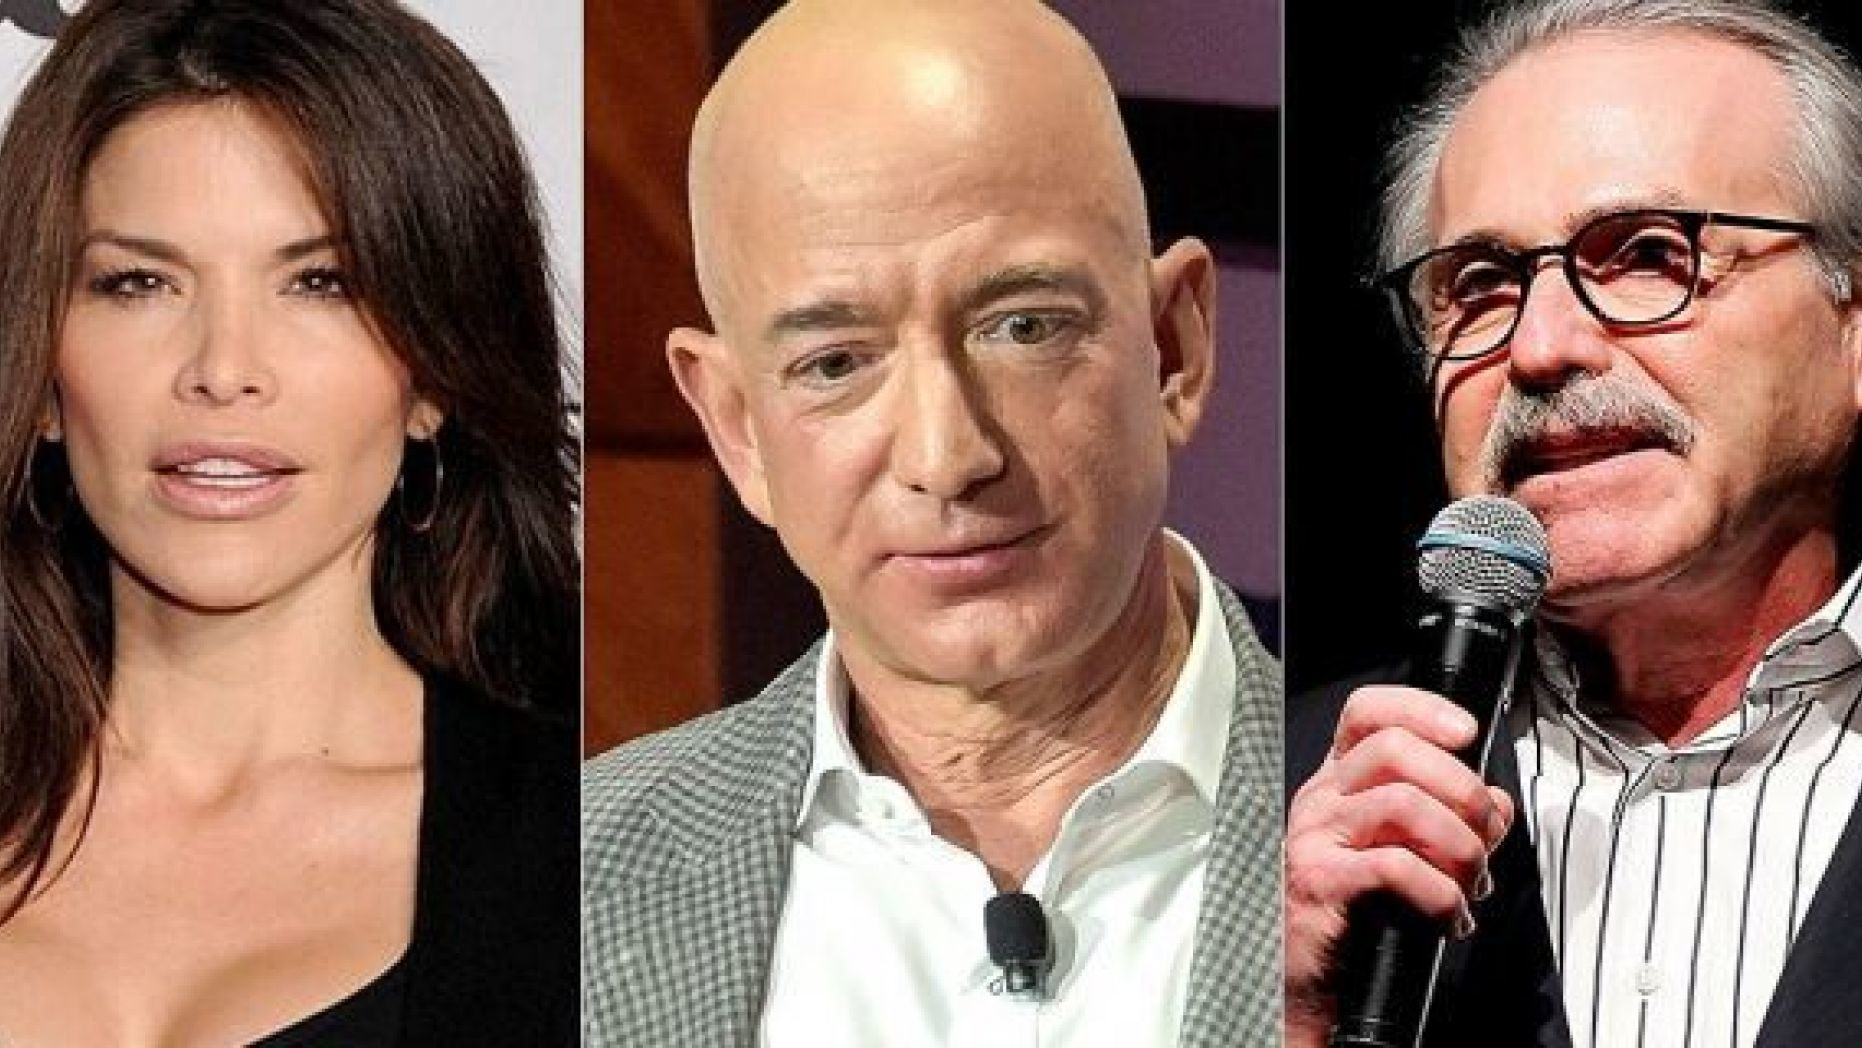 lauren sanchez jeff bezos david pecker ap via fox news